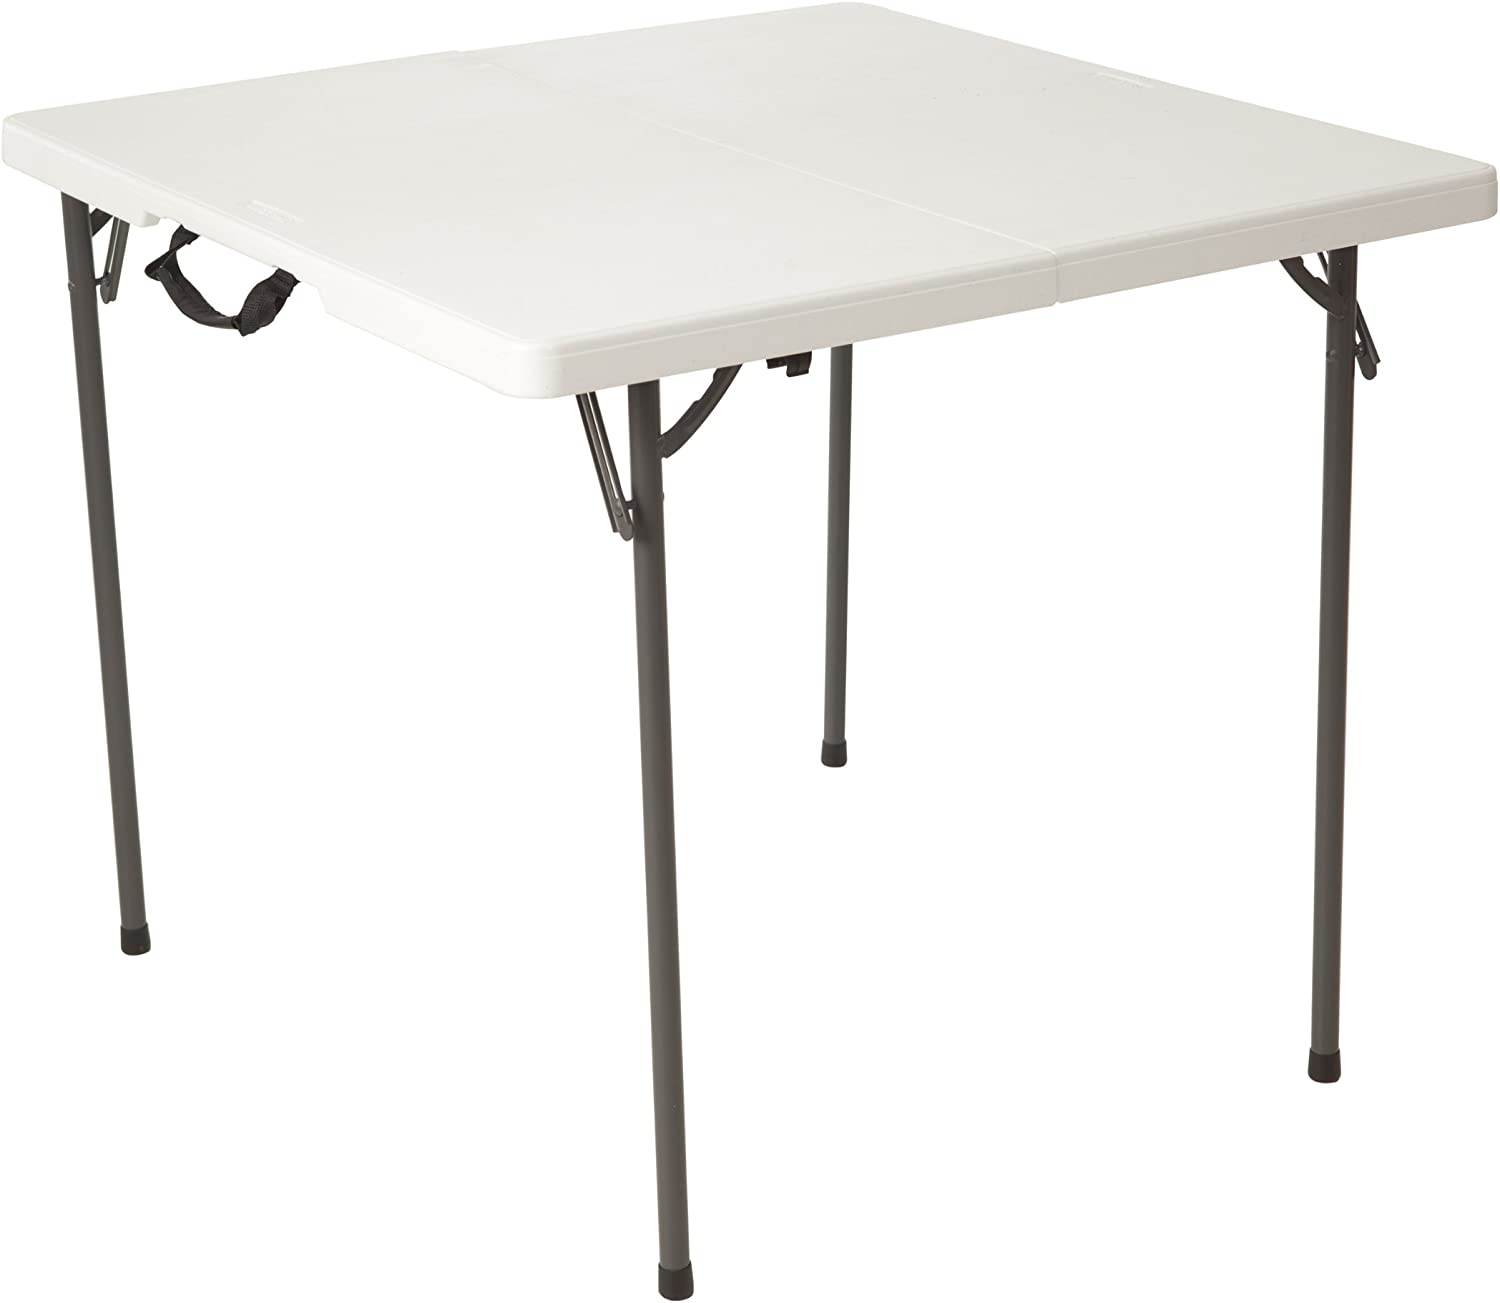 LIFETIME 80273 Table, Square, Residential, 34